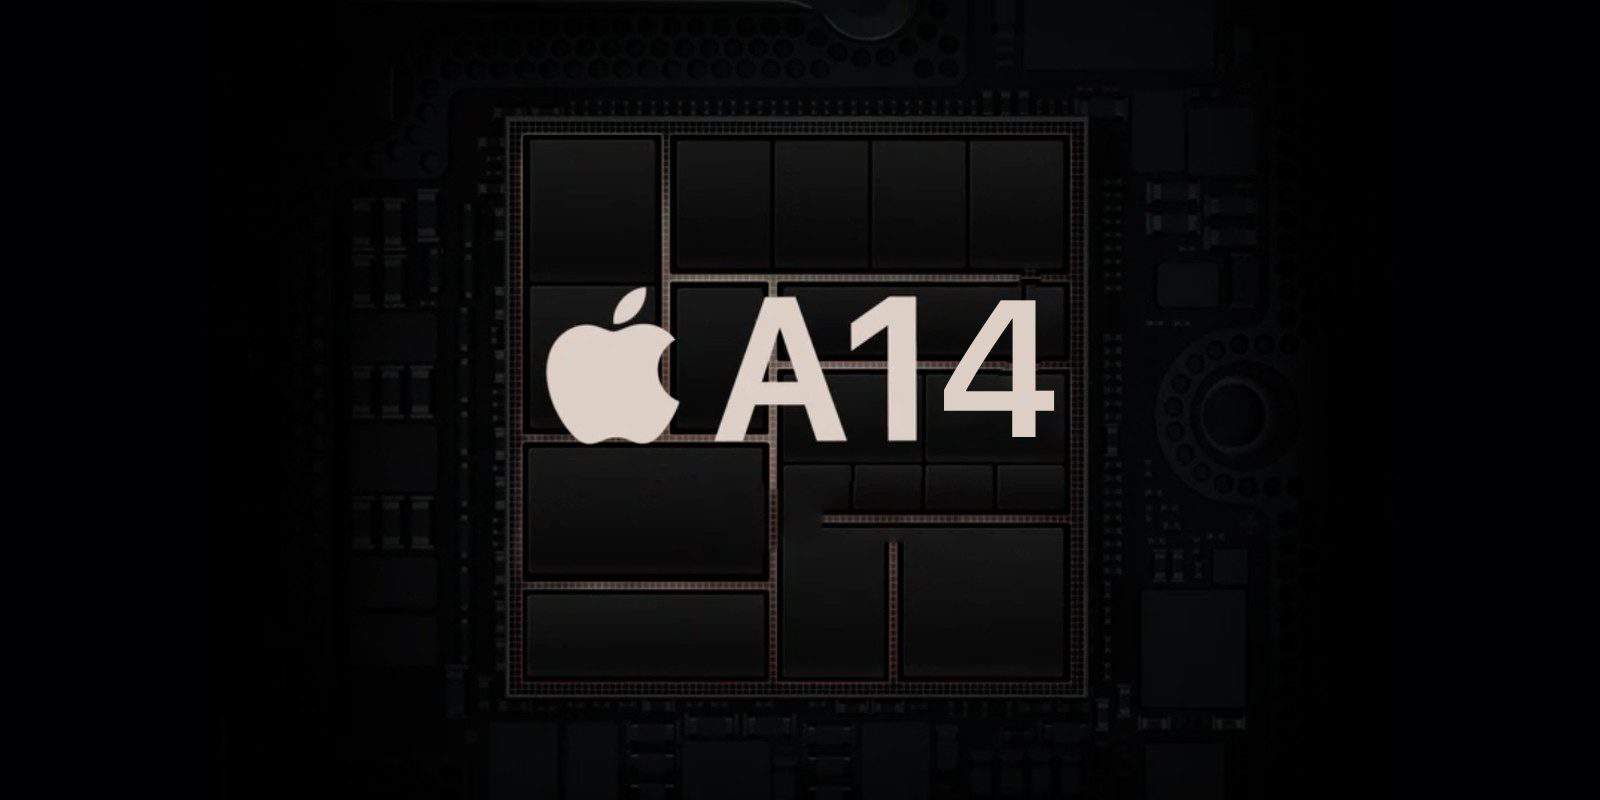 AnTuTu benchmark: iPad Air 2020 outperforms the iPhone 12 despite having the same A14 Bionic SoC